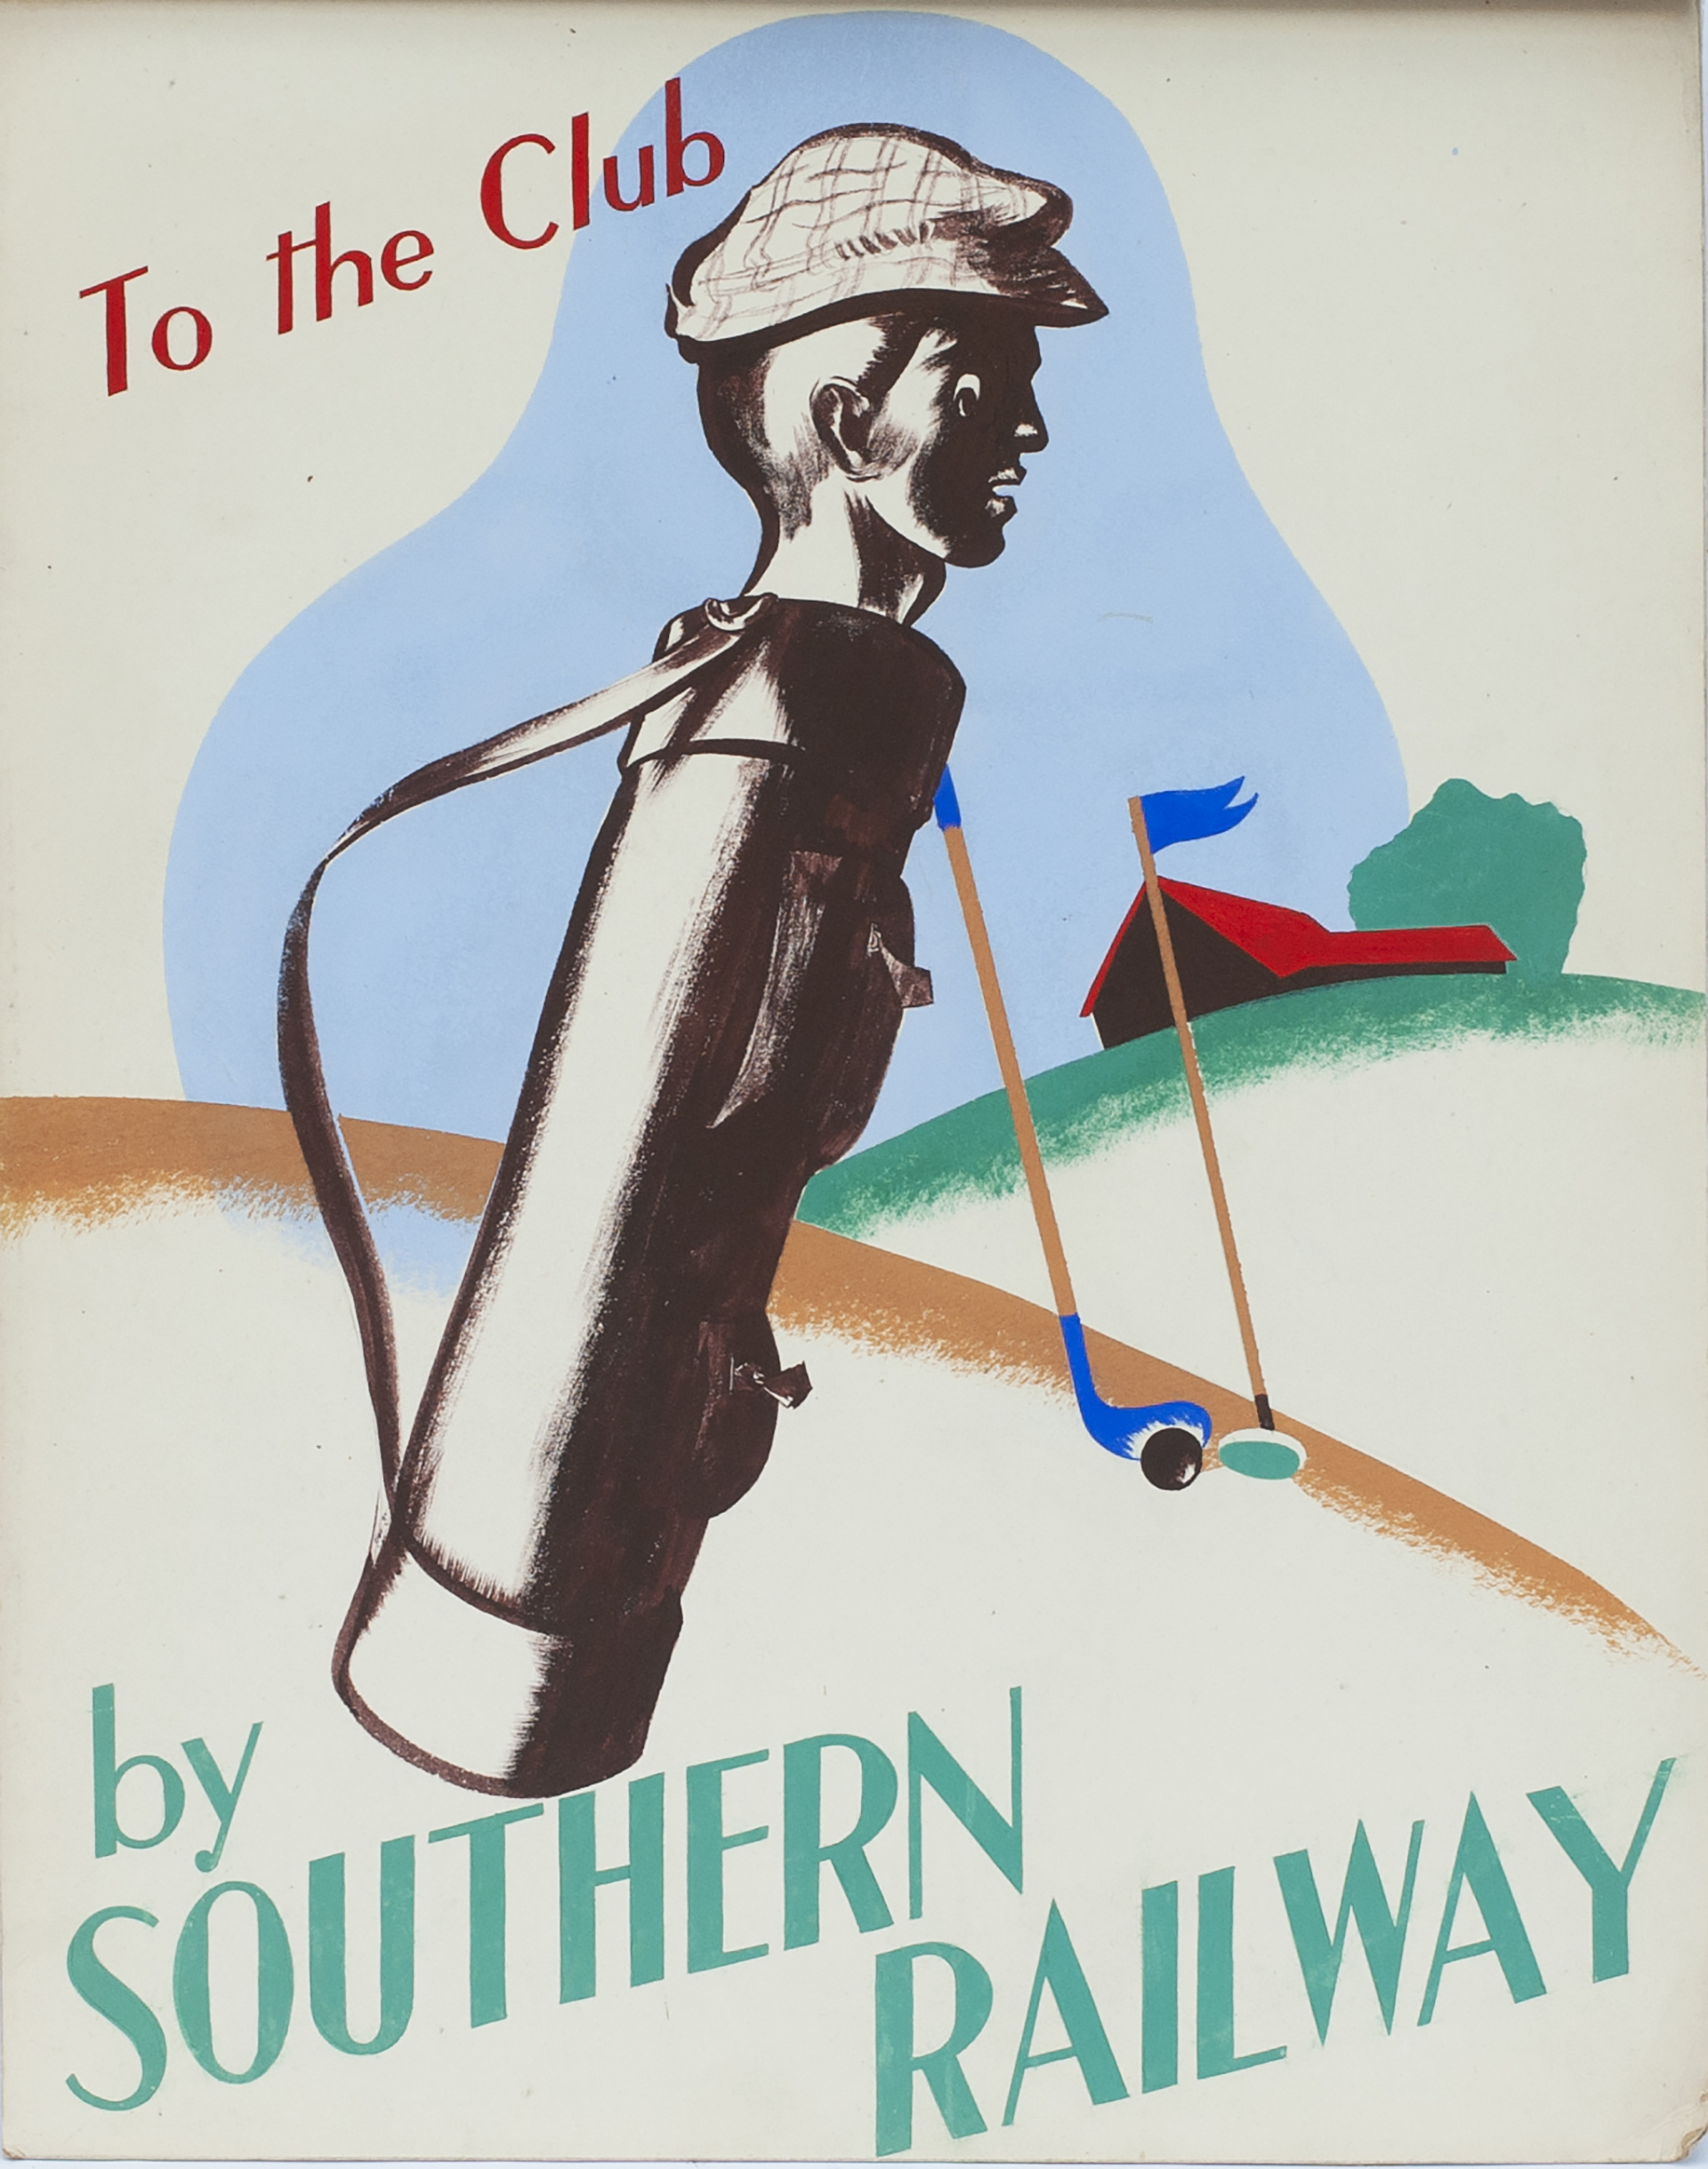 Southern Railway Poster Artwork TO THE CLUB By